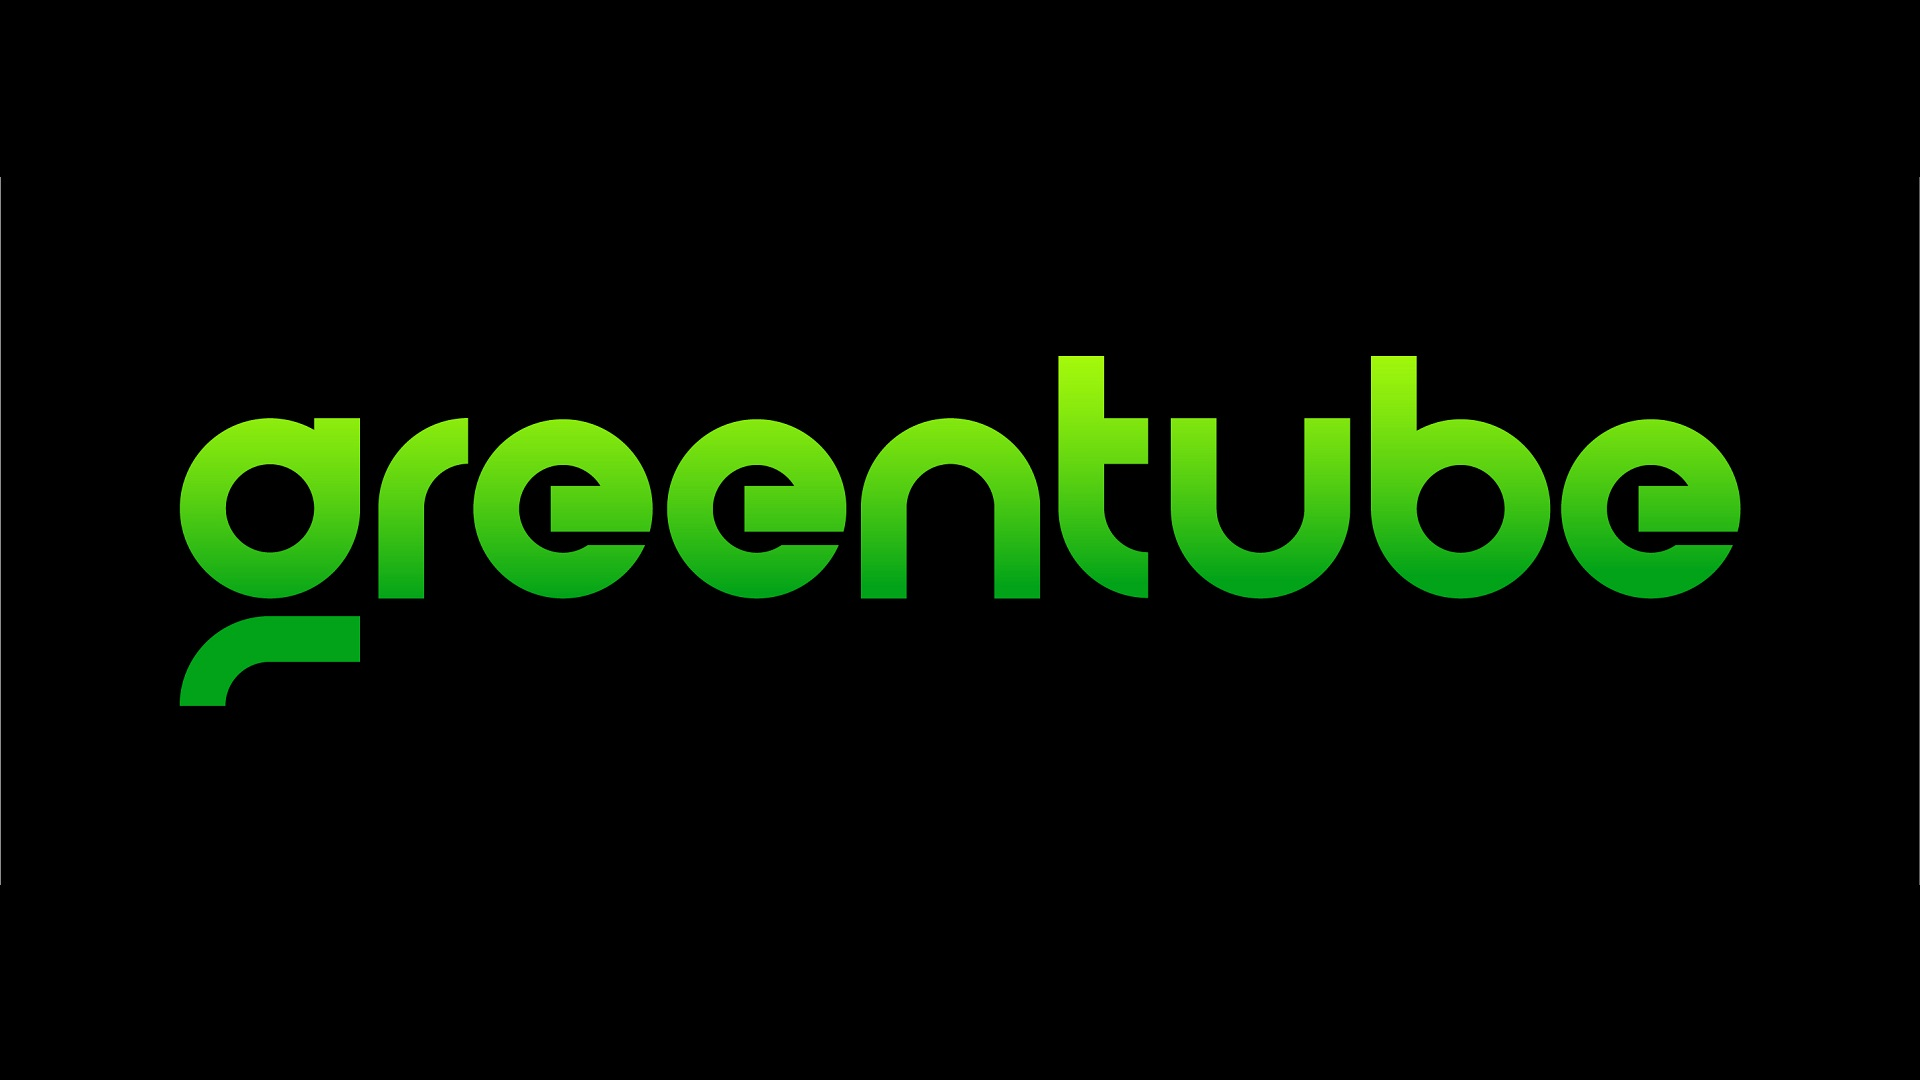 Greentube introduces jackpot titles in Switzerland together with Casino Luzern